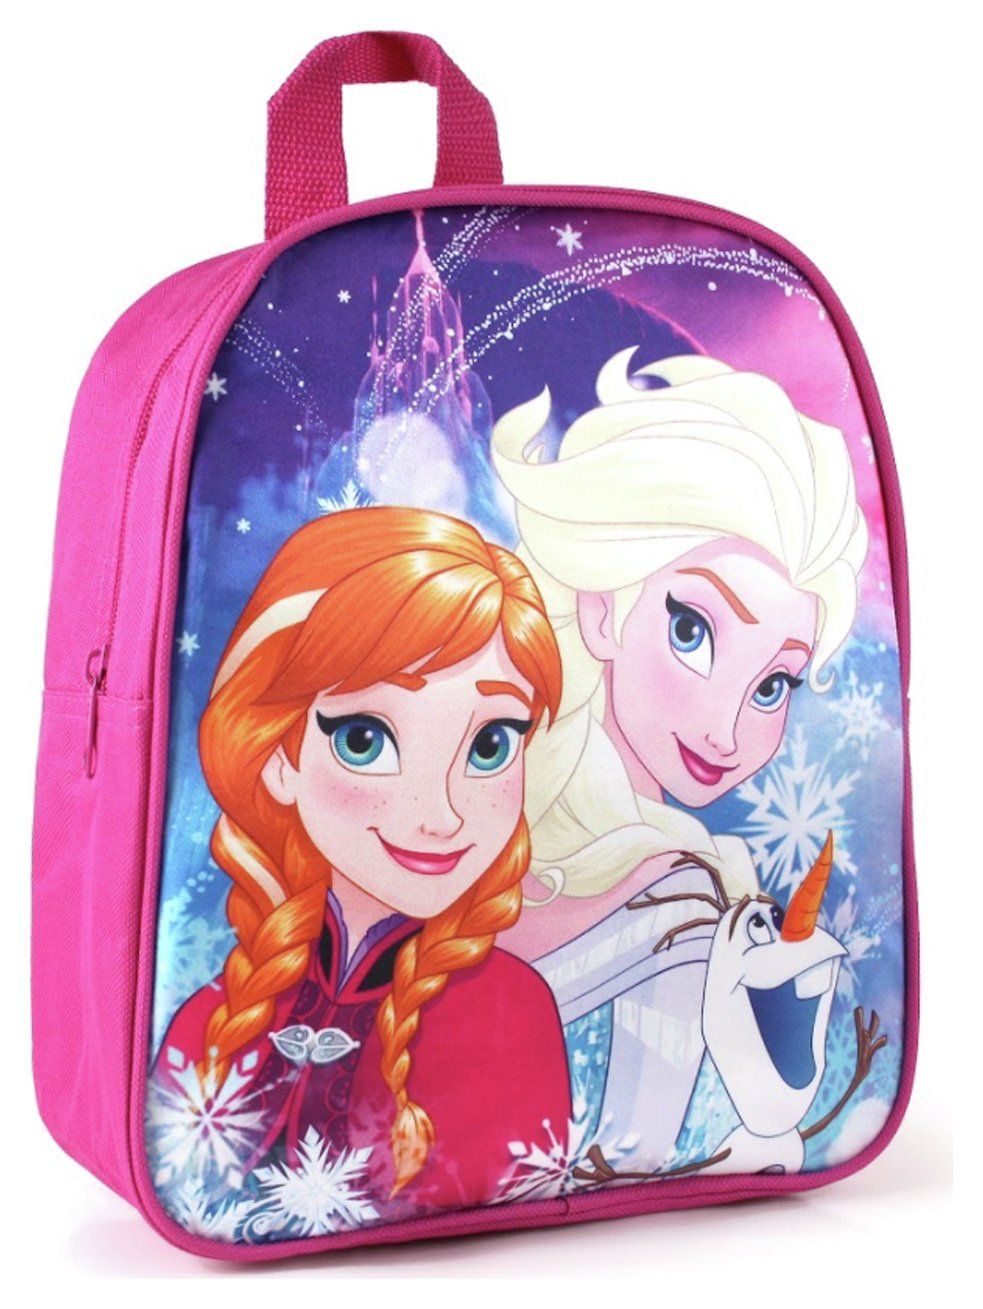 Disney Frozen Sisters and Olaf Backpack - Pink